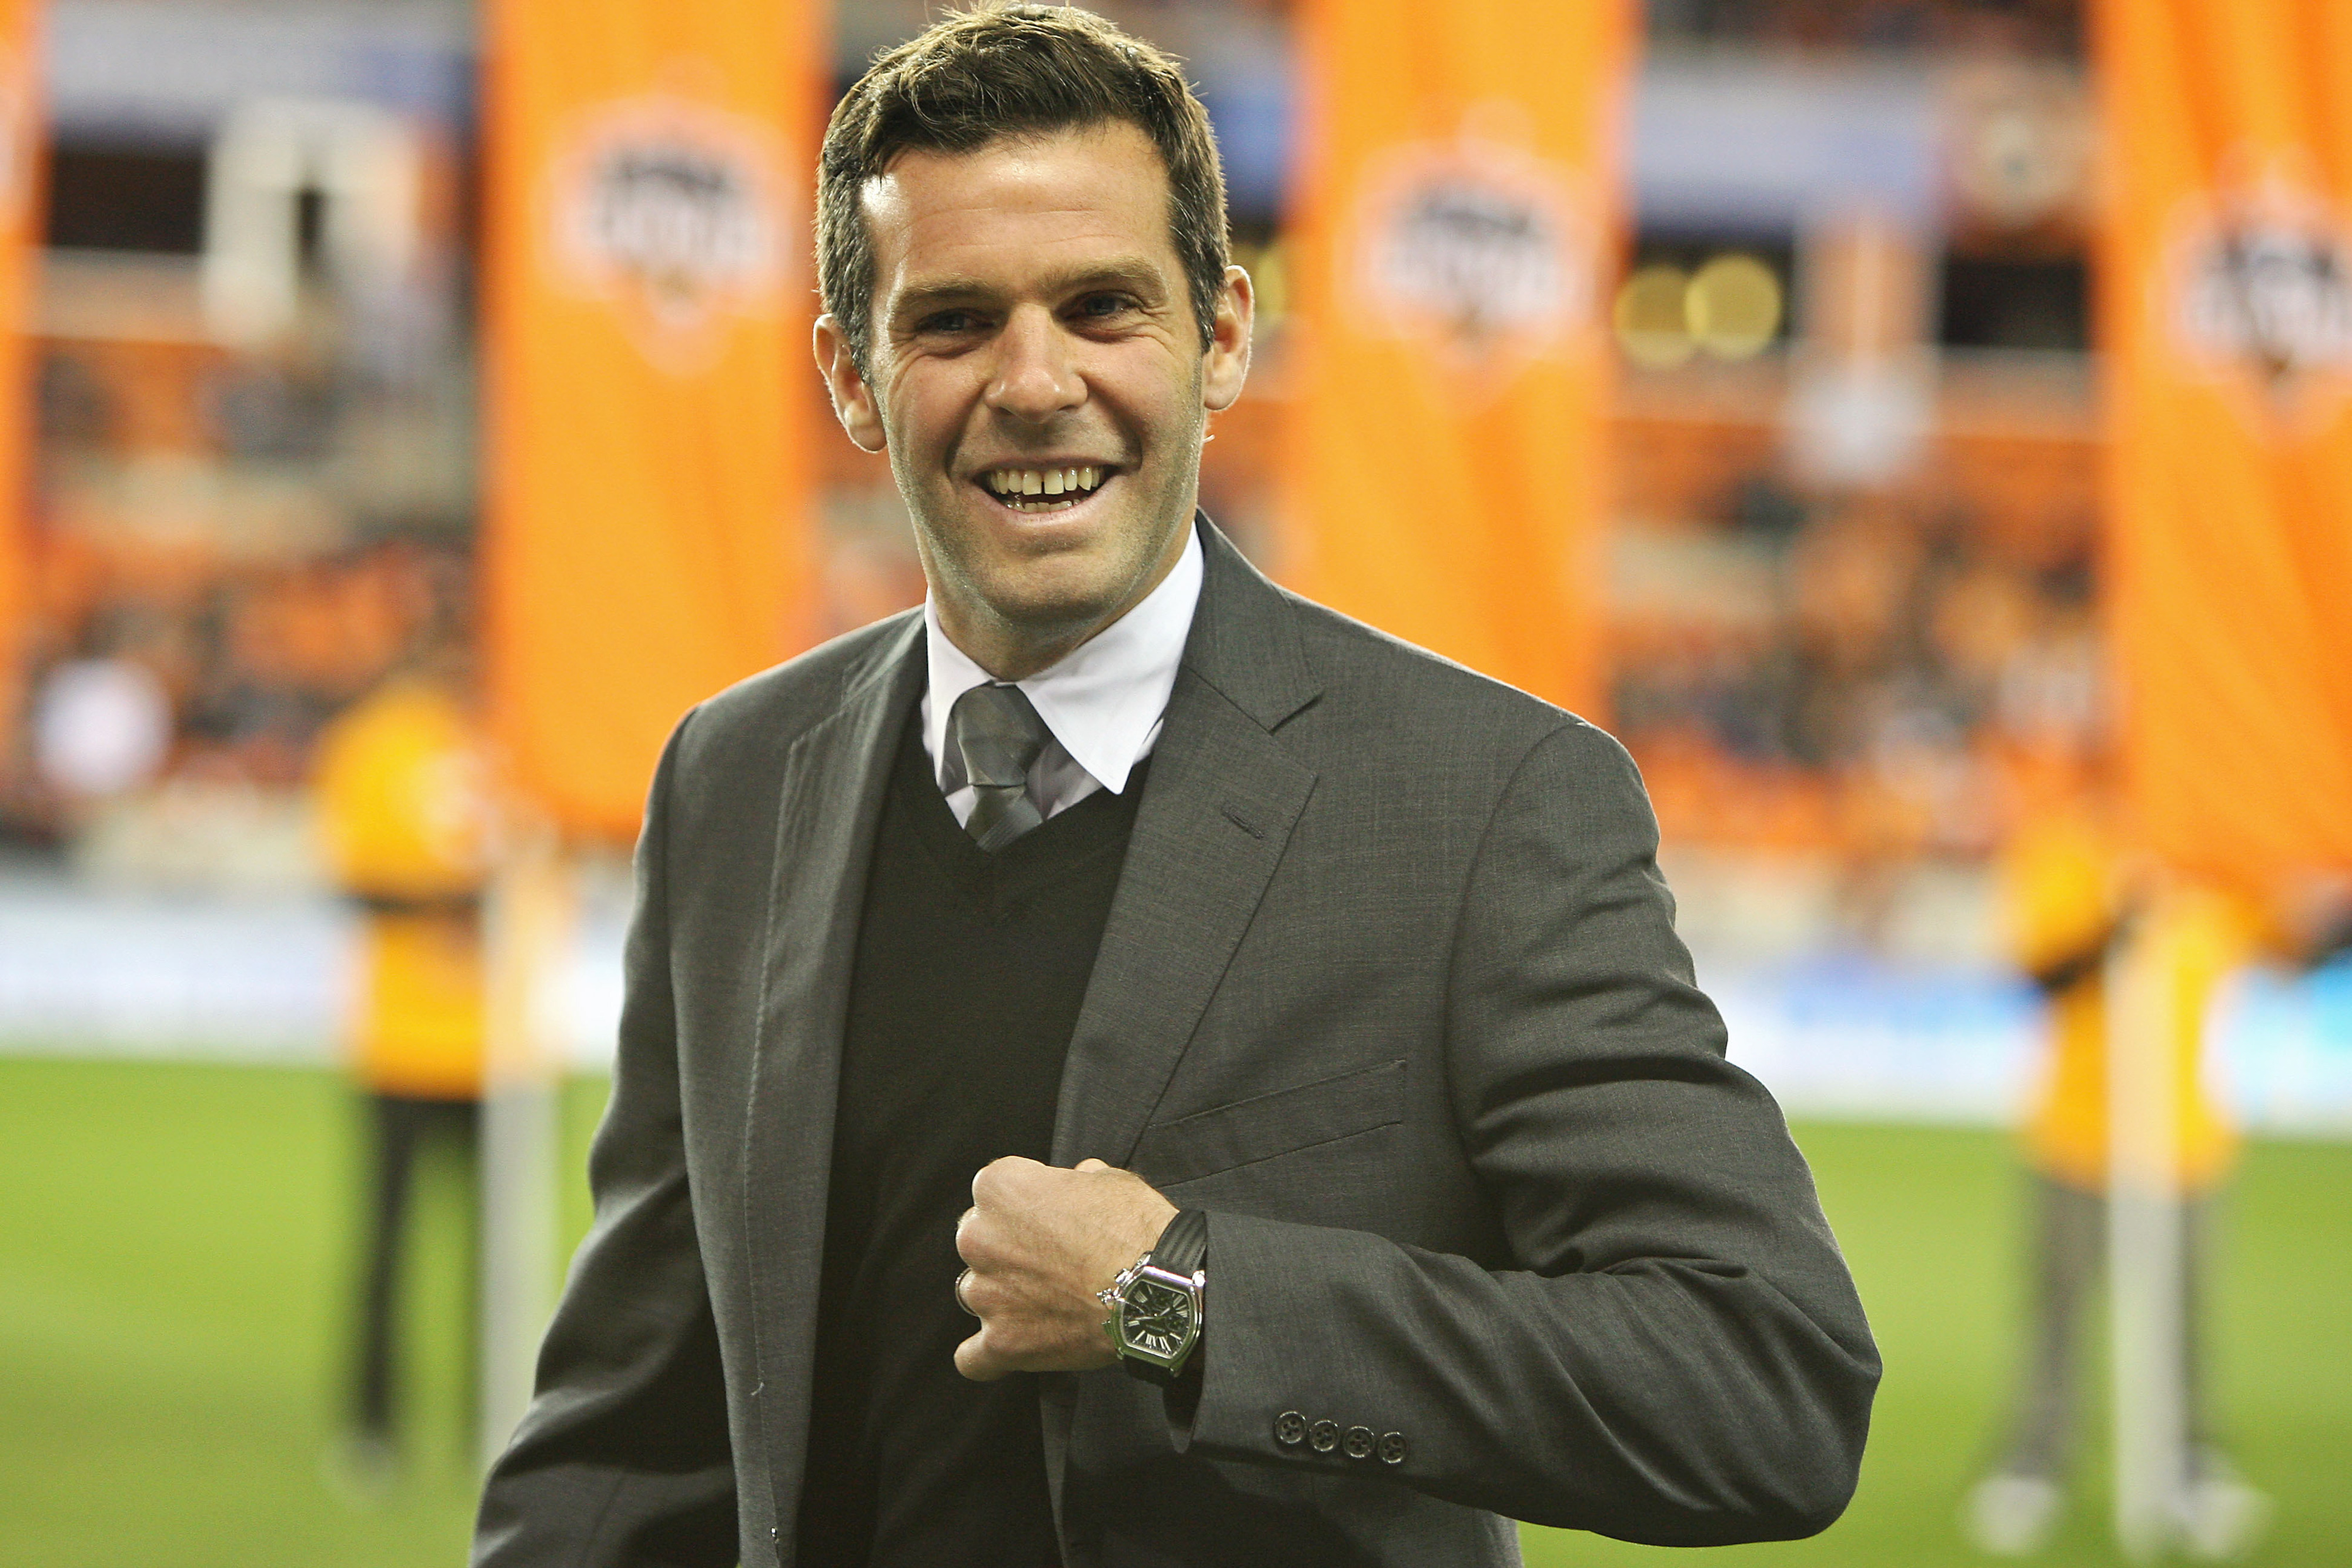 Ben Olsen has every reason to smile given the unprecedented means he'll have to improve his side in 2014.